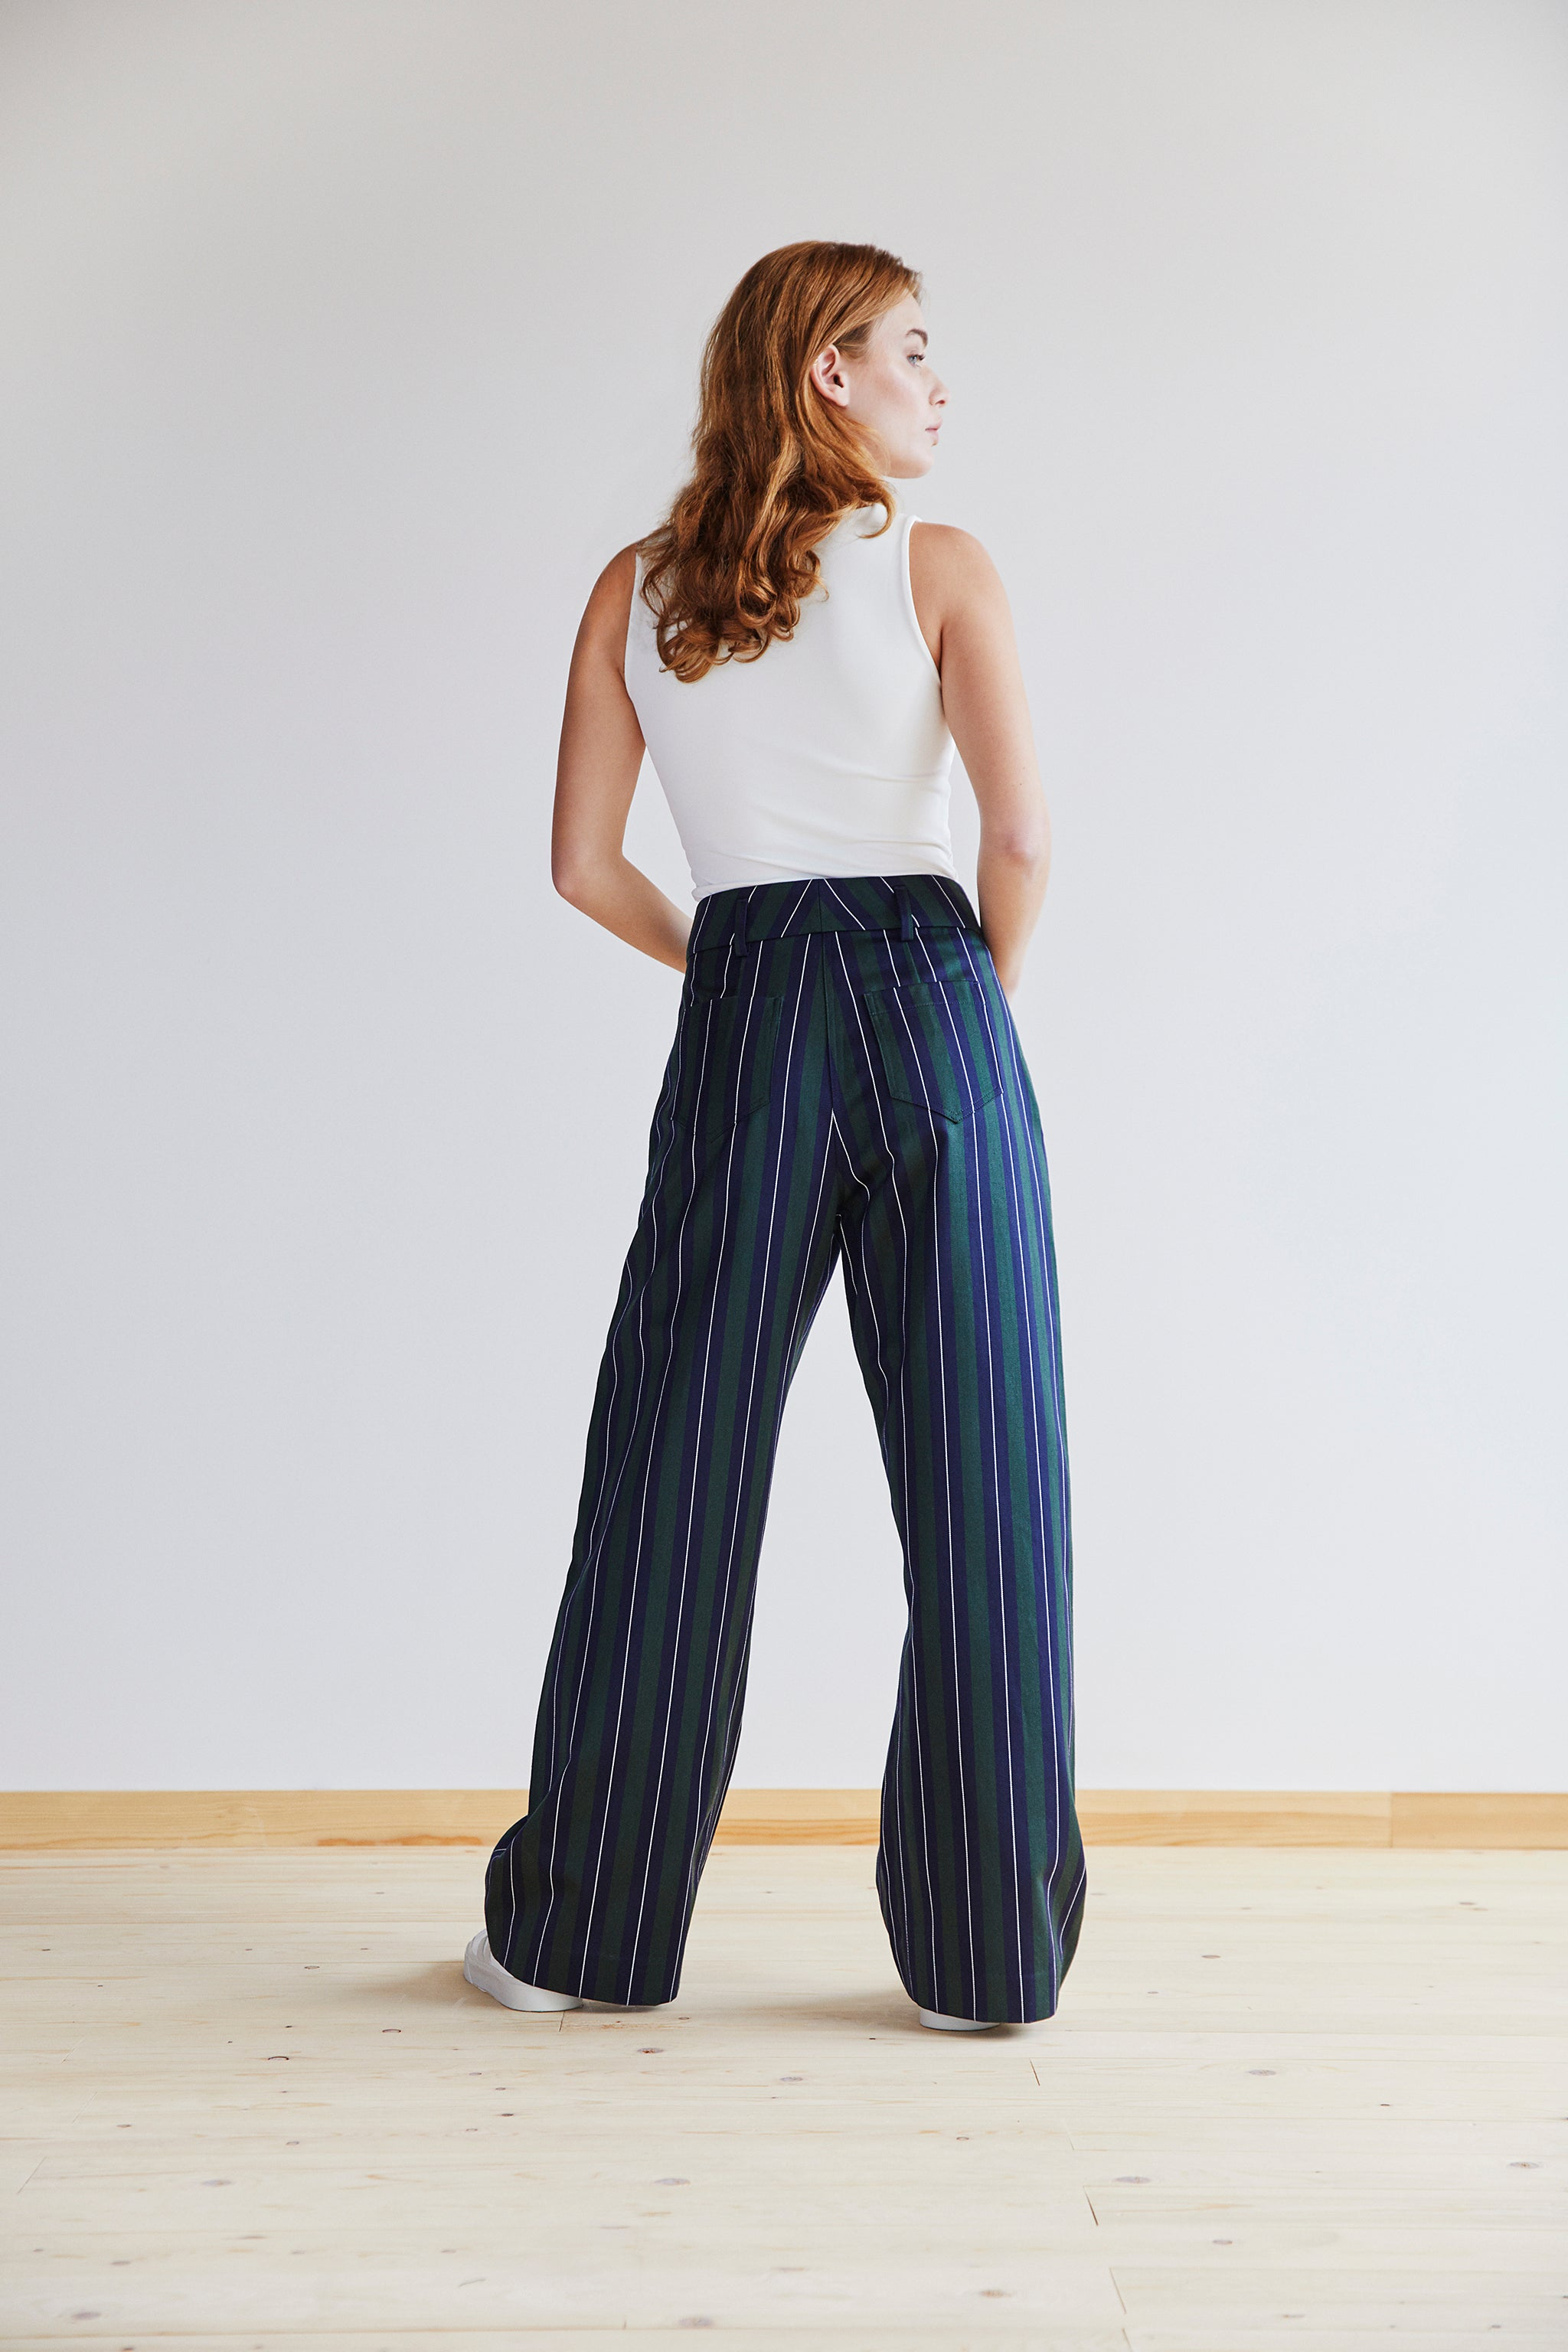 Jessie Trouser in Green, Navy and White Stripe - Alice Early